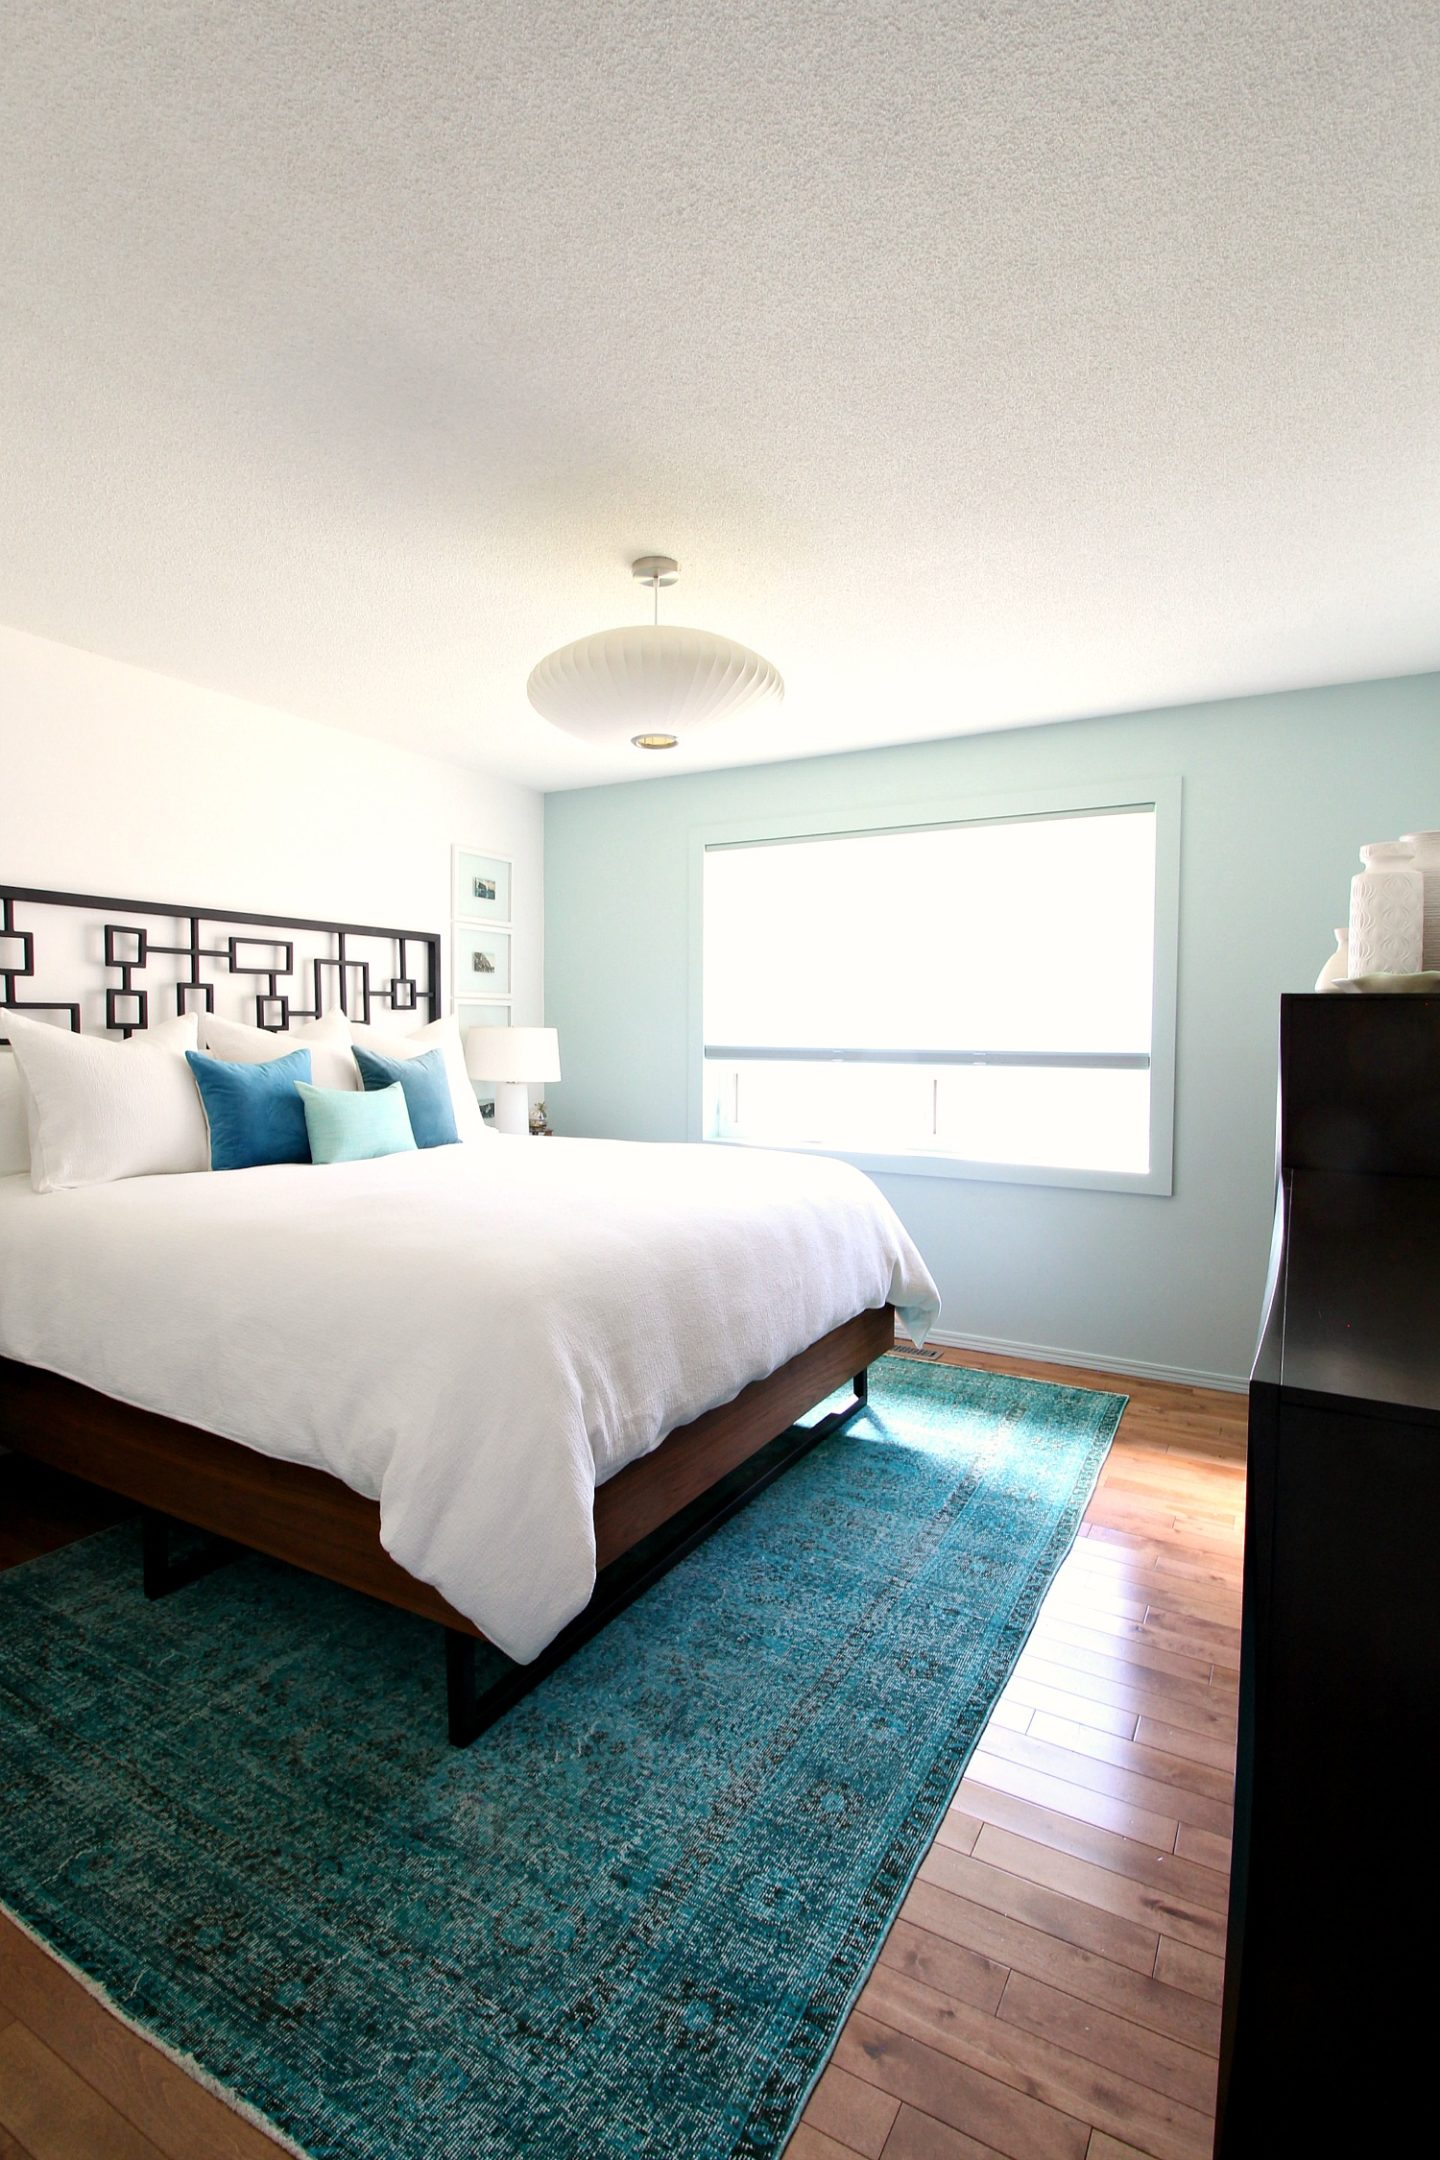 Small Bedroom Rug Size Guide